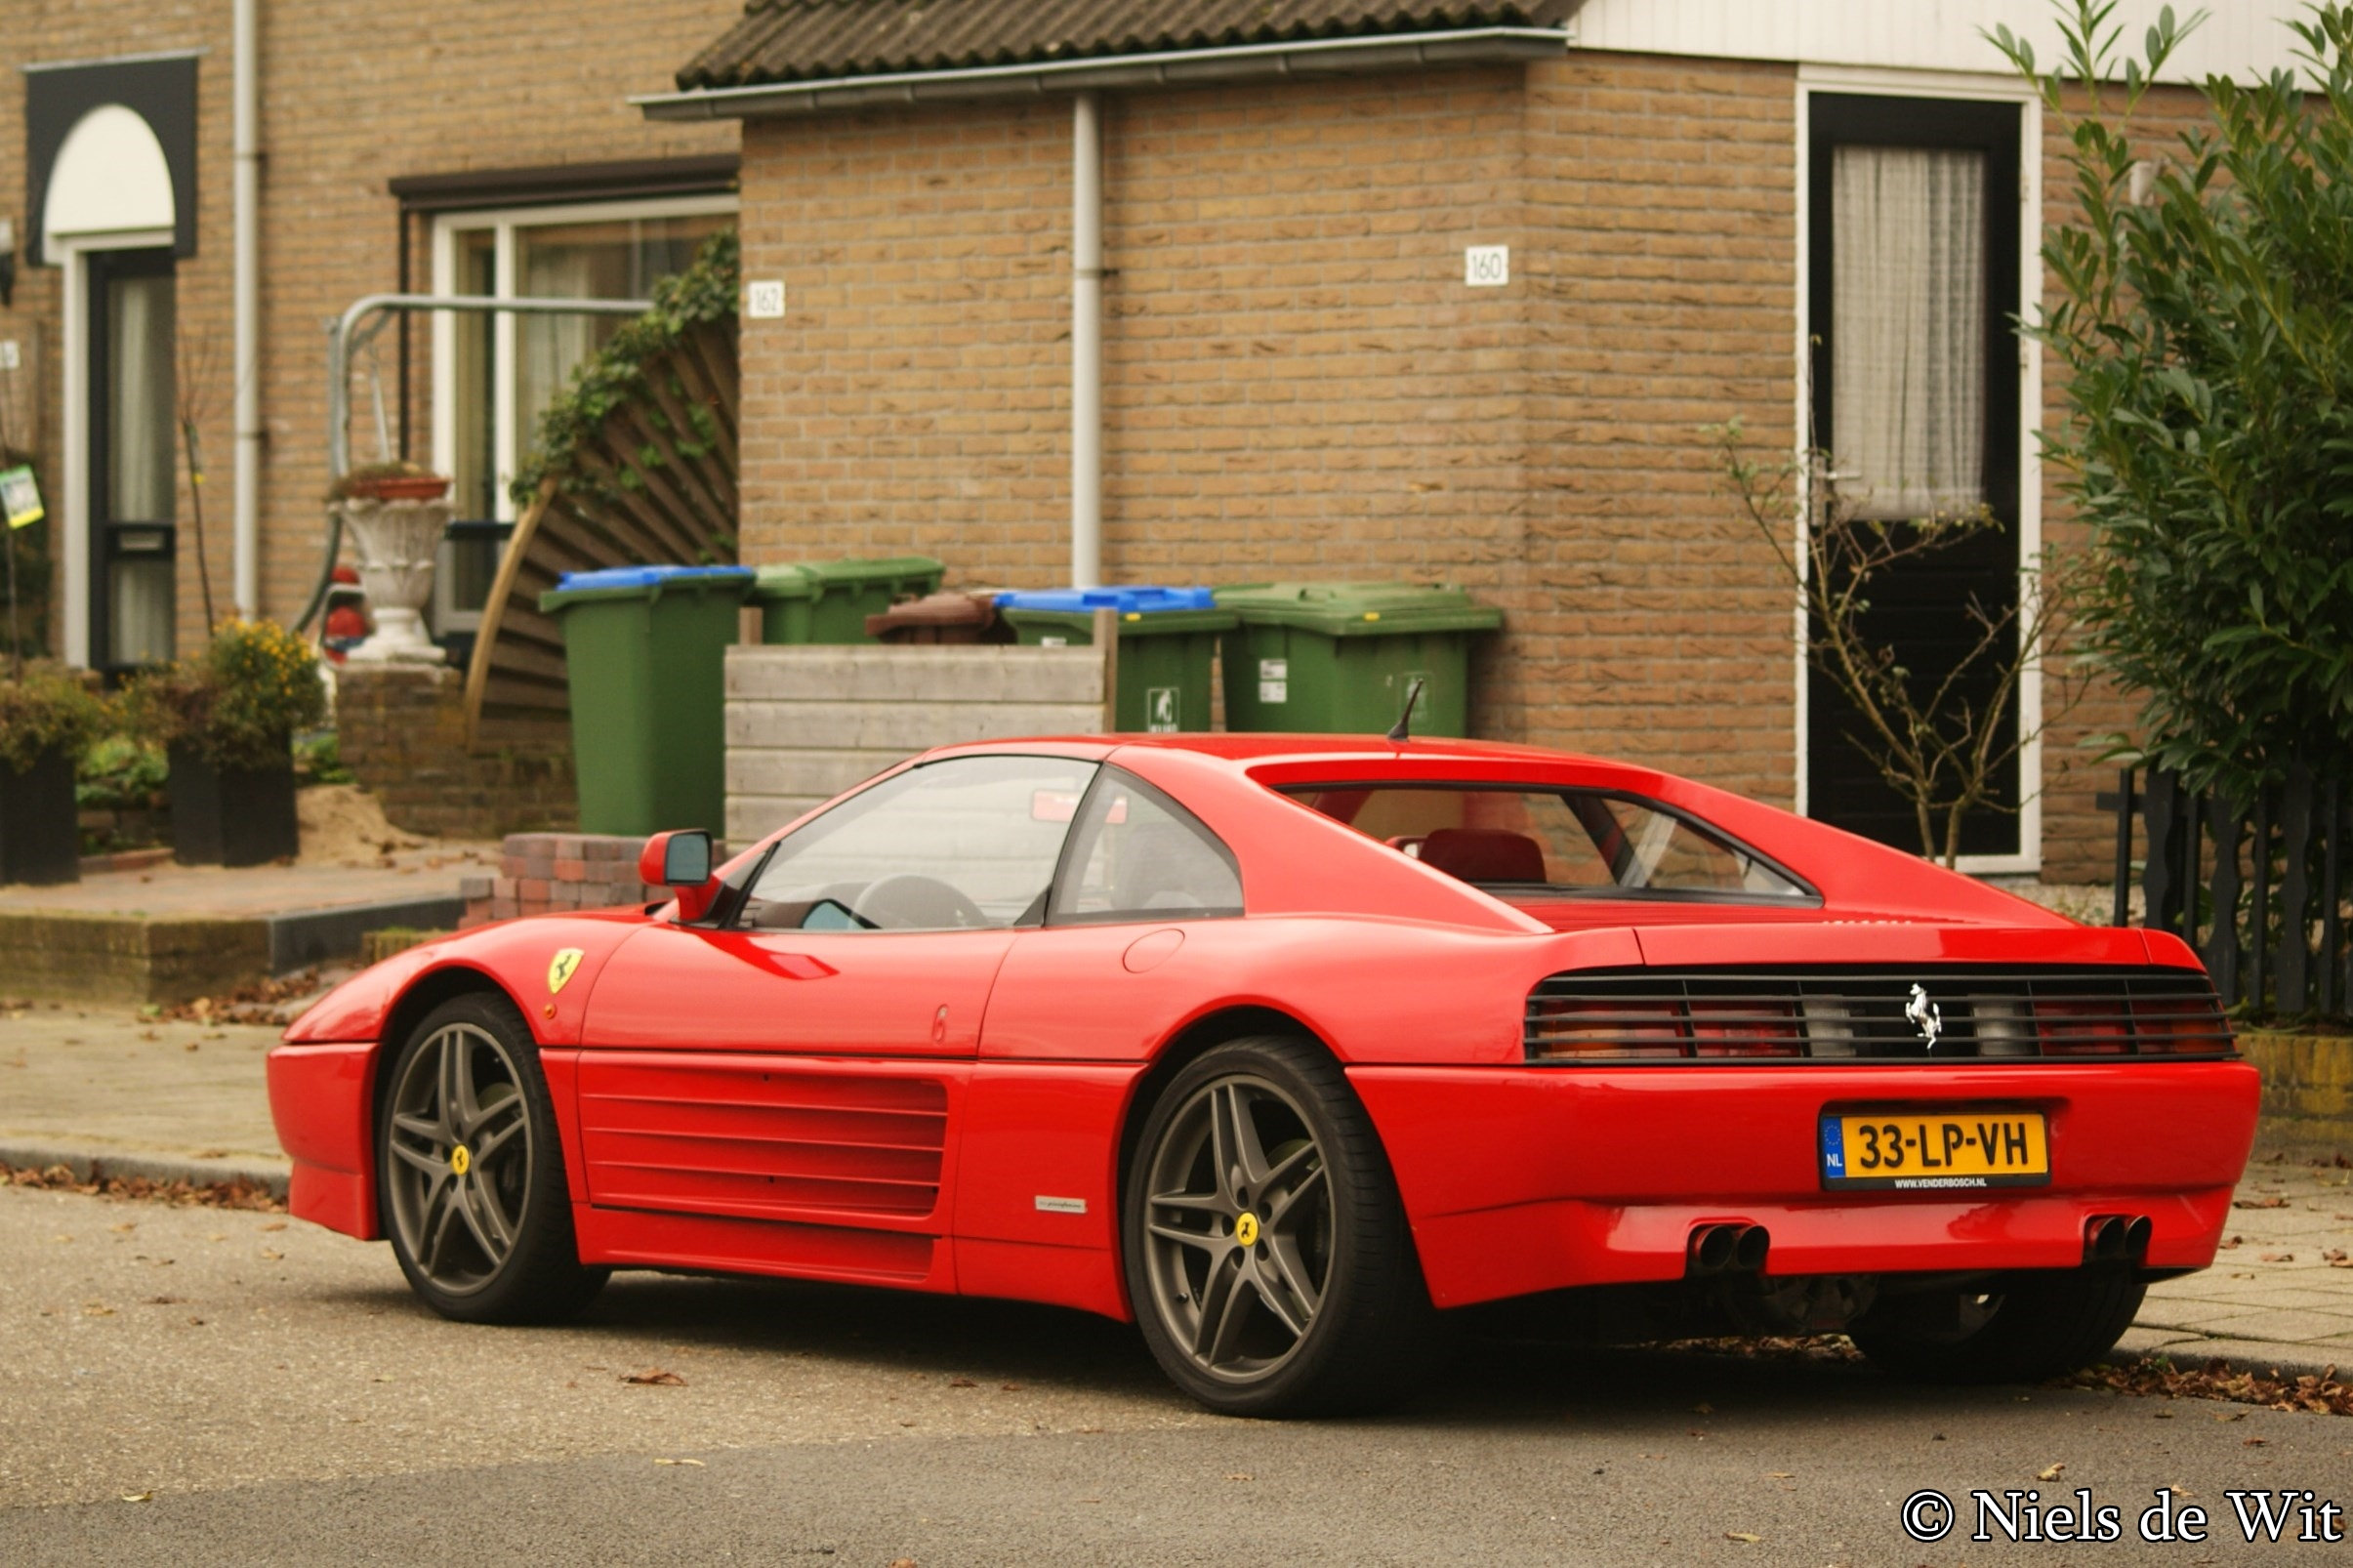 File:1992 Ferrari 348 TS (15870727606).jpg - Wikimedia Commons